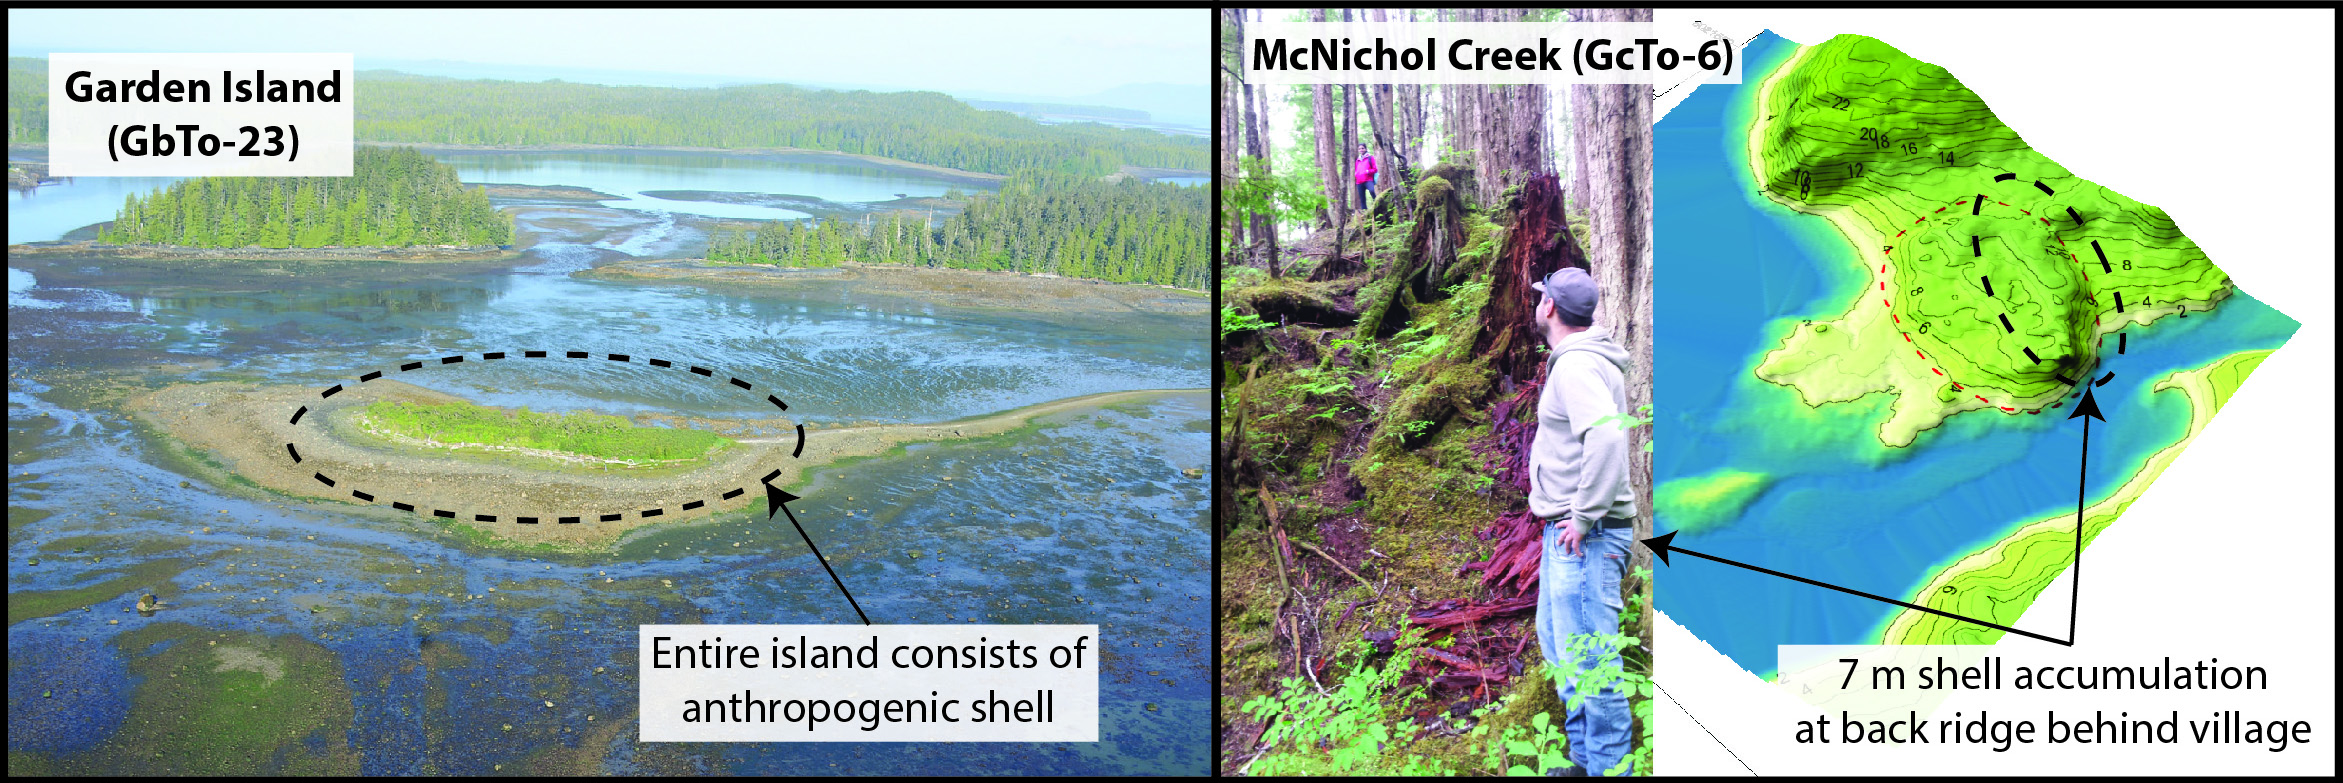 Examples of shell deposition that significantly transform landforms at Prince Rupert Harbour villages: Garden Island is an island almost entirely constructed of anthropogenic shell. Photo courtesy of Coastal and Ocean Resources and the Prince Rupert Port Authority (http://www.rupertport.com/port-authority/sustainability/shoreline-habitat). At the McNichol Creek village site (GcTo-6), a ridge of shell rises 7 m up from the natural landform behind the village. In the inset photo, the person in the red jacket stands on the crest of the ridge while the person in the foreground is standing at the base of the ridge behind the site on the natural ground surface. Photo by B. Letham.